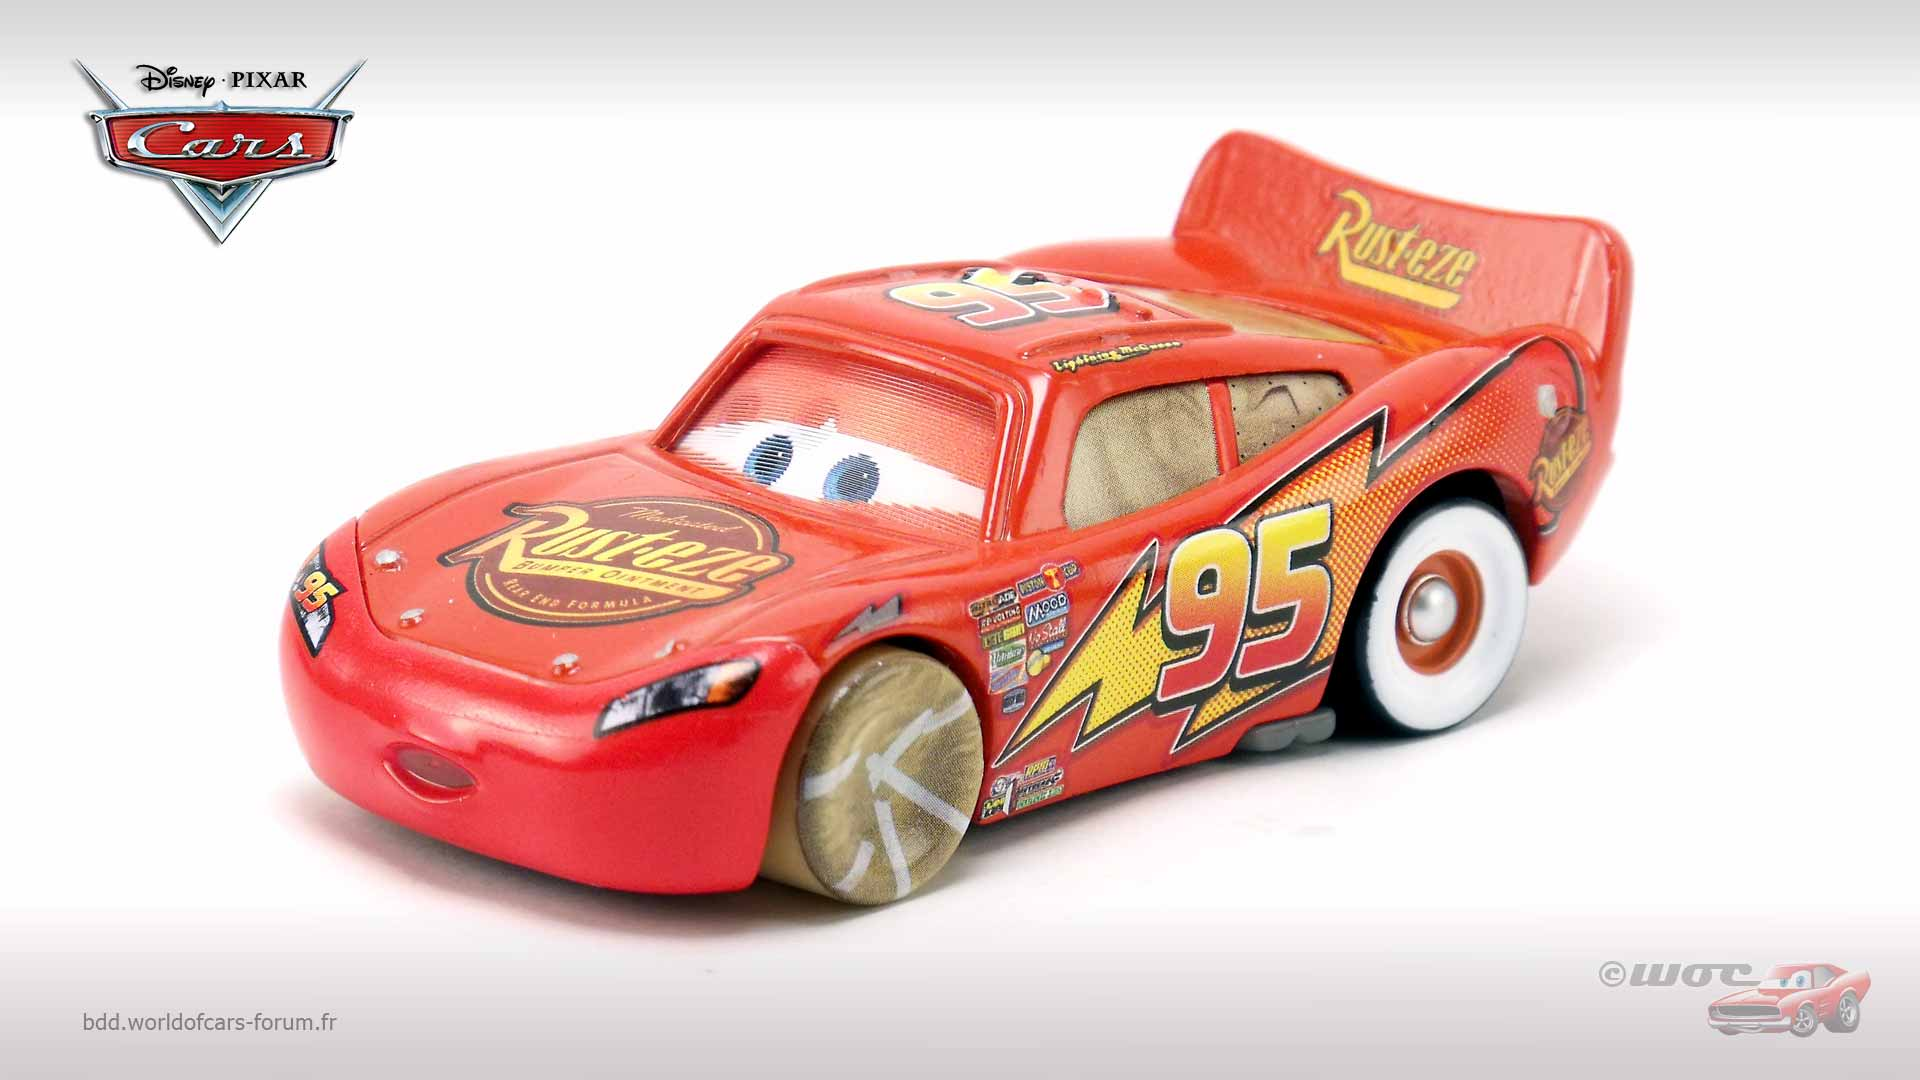 Paint Mask McQueen (Chase lenticular)